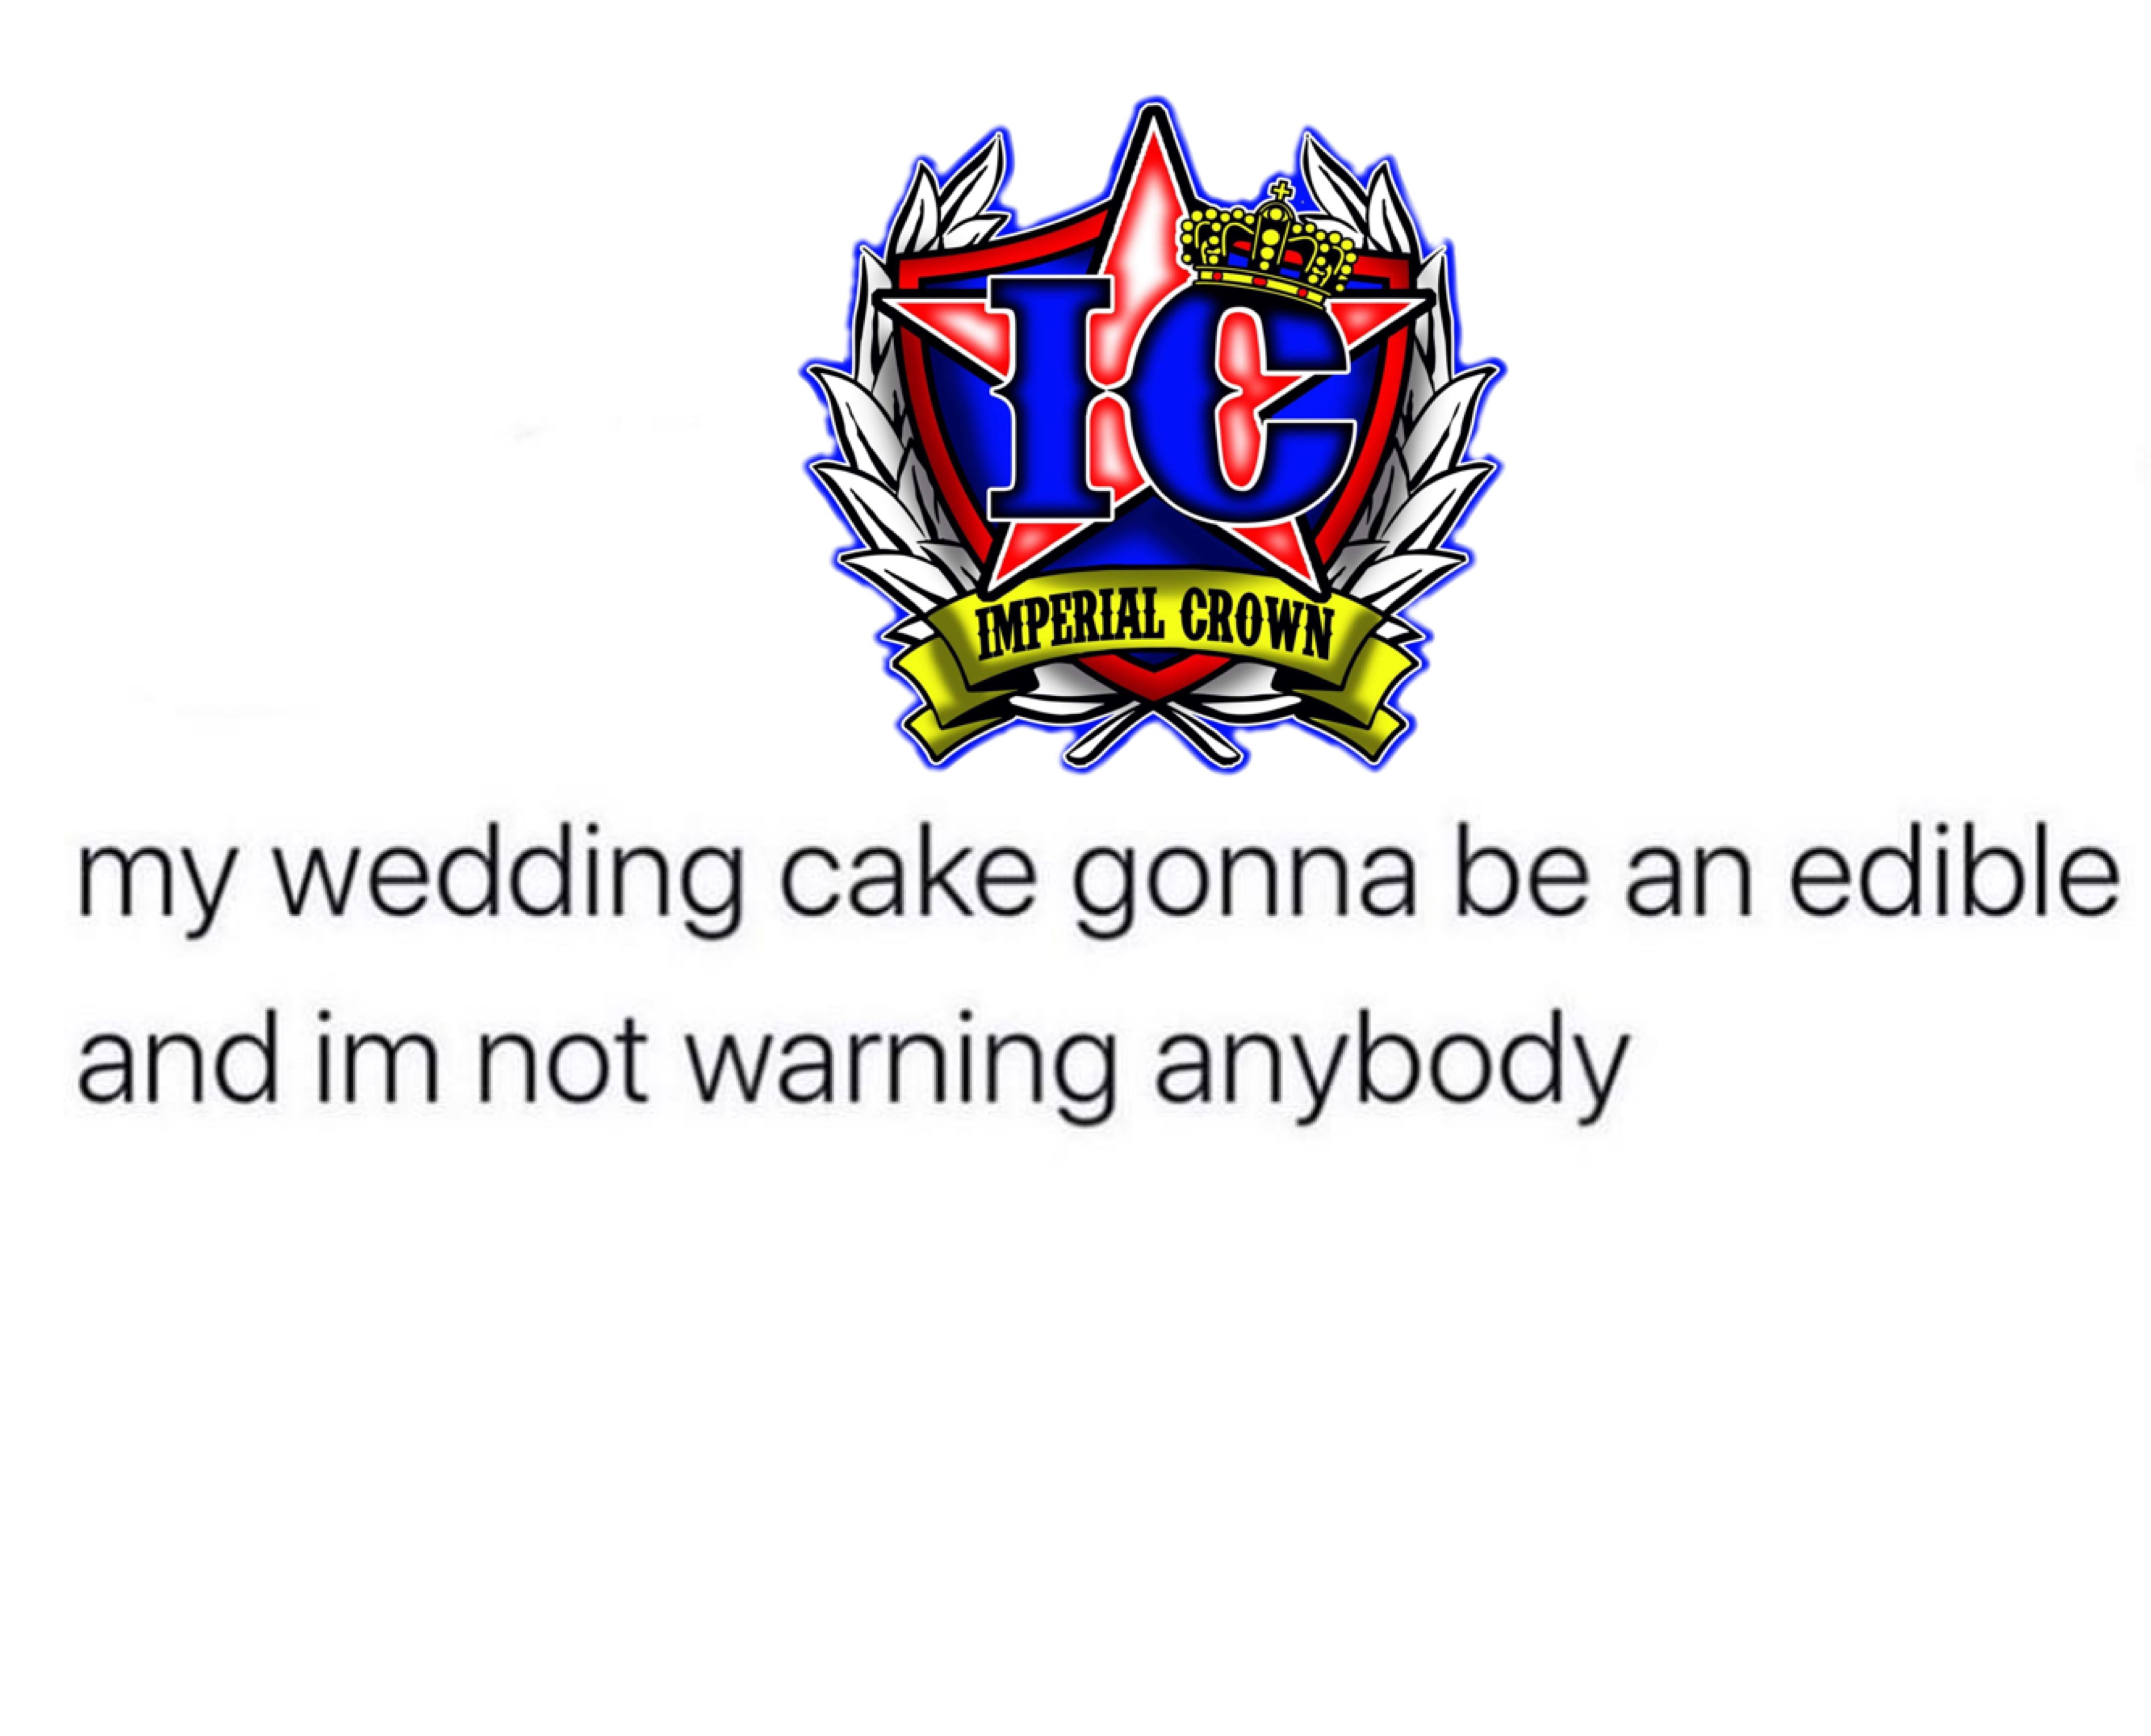 My wedding cake gonna be an edible and I'm not warning anybody